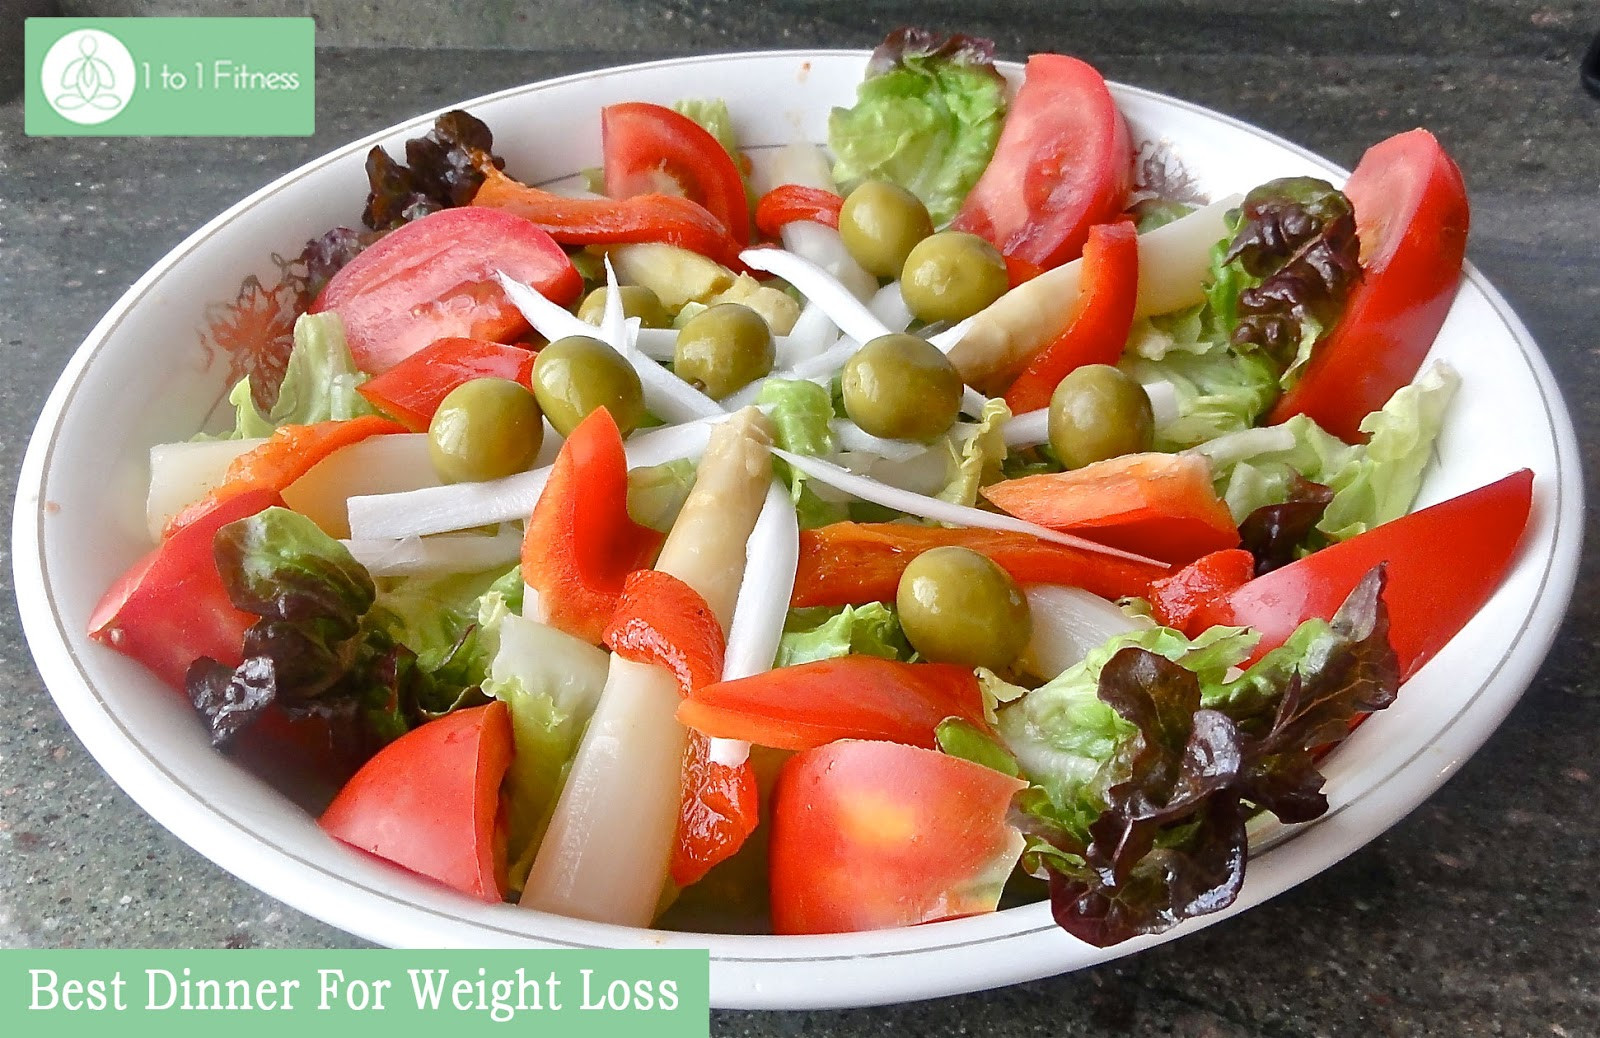 Healthy Salads For Weight Loss  Which Is The Best Diet Plan For Weight Loss 1 to 1 Fitness